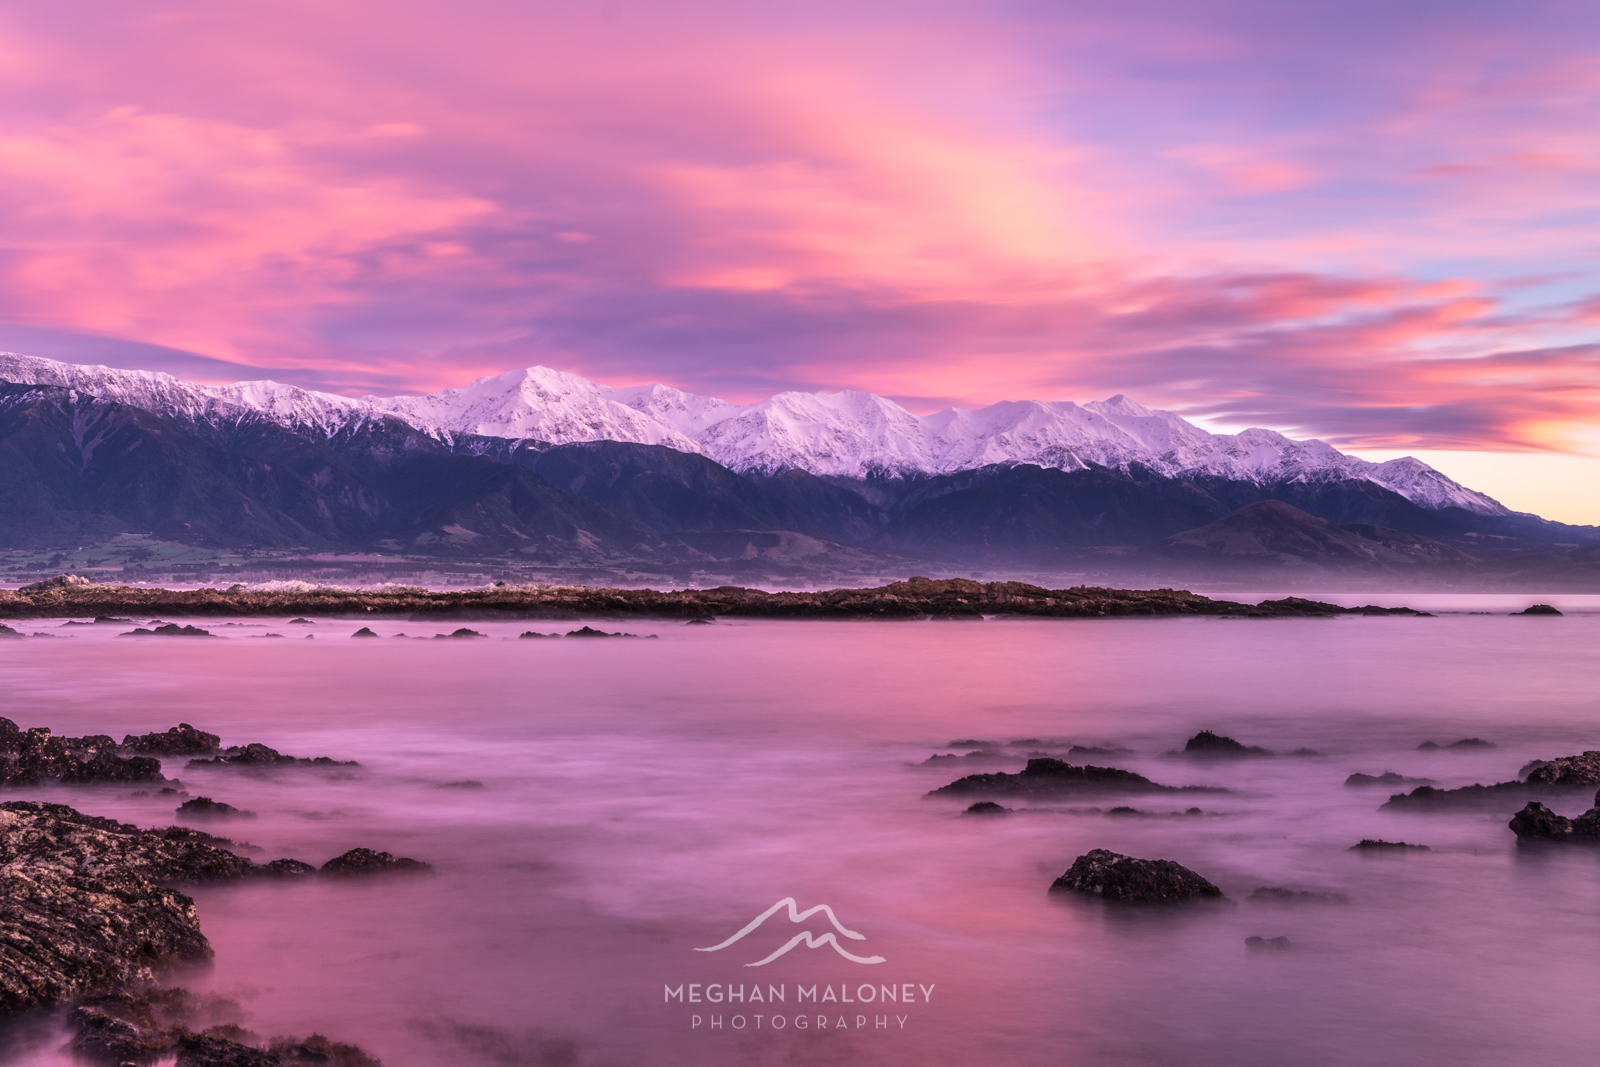 kaikoura dawn pink mountain sunrise